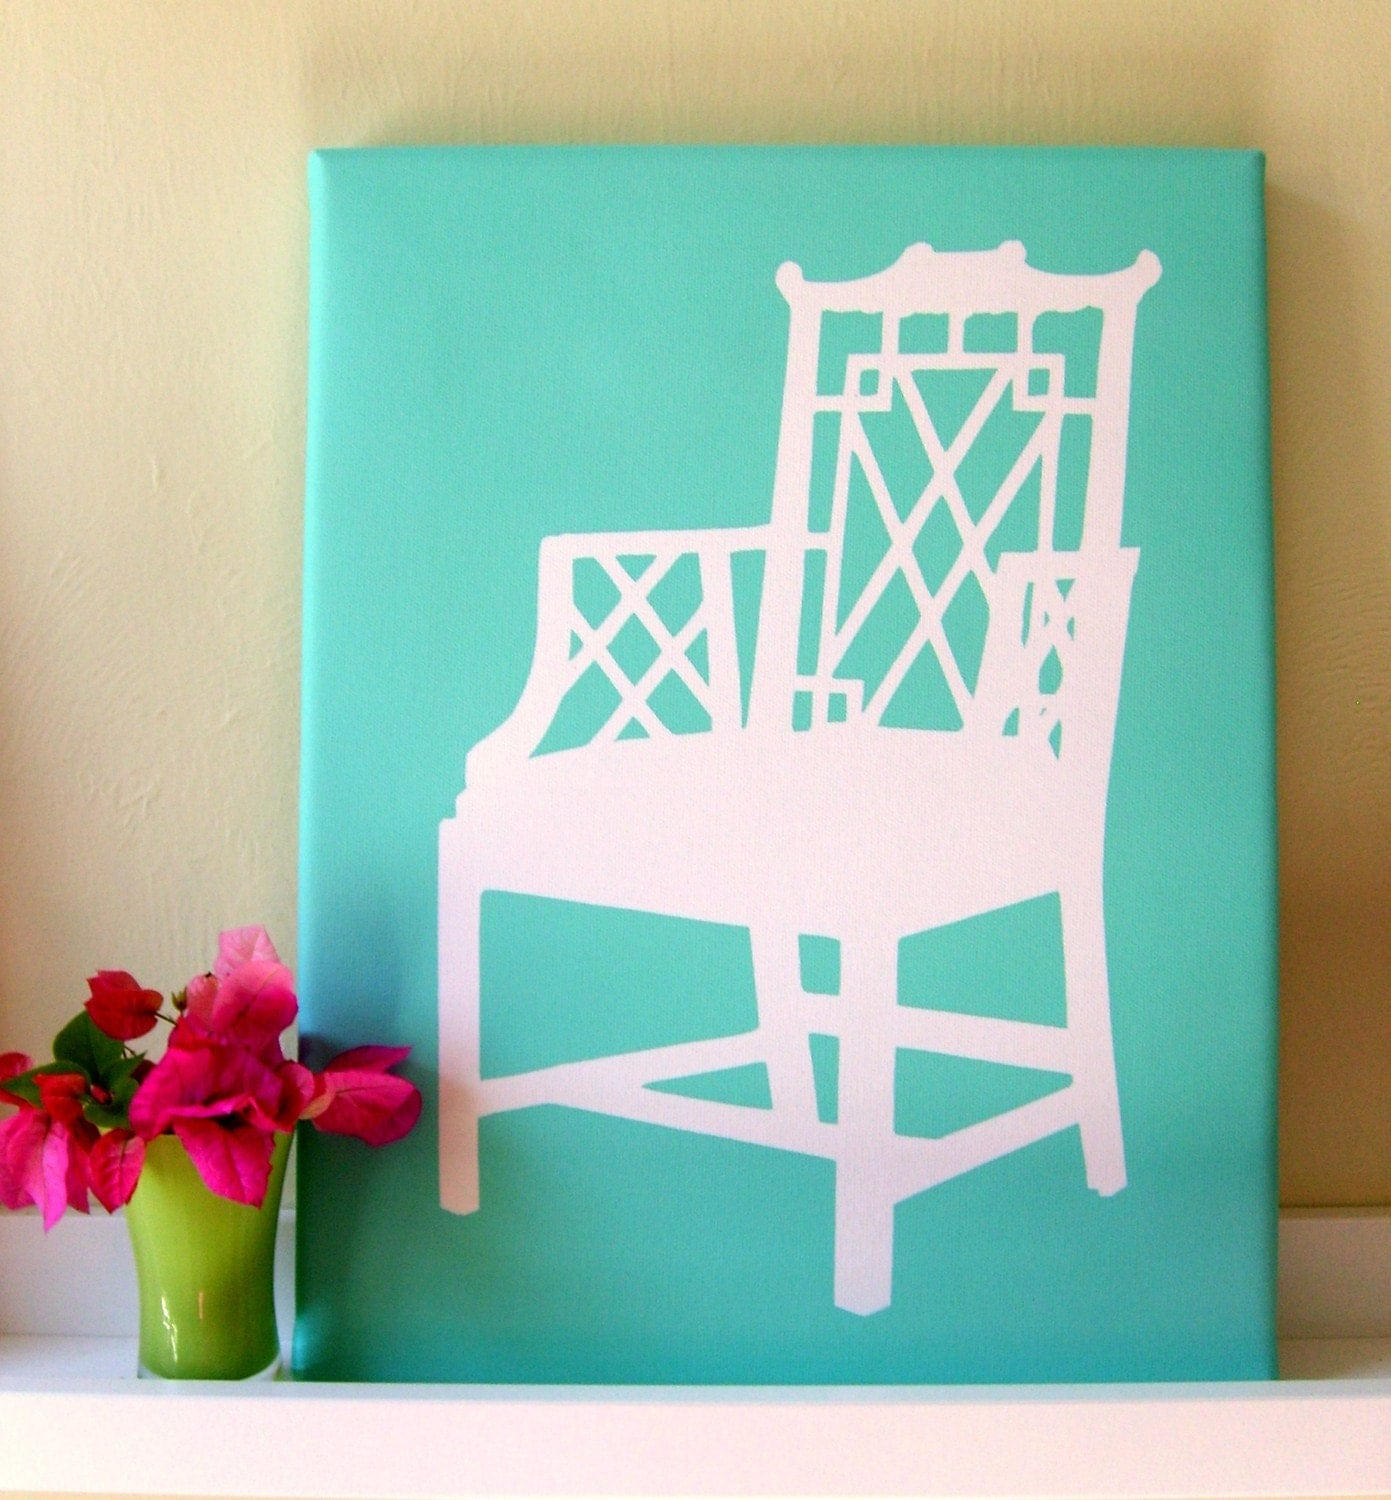 LATTICE CHAIR Silhouette on Canvas 11x14